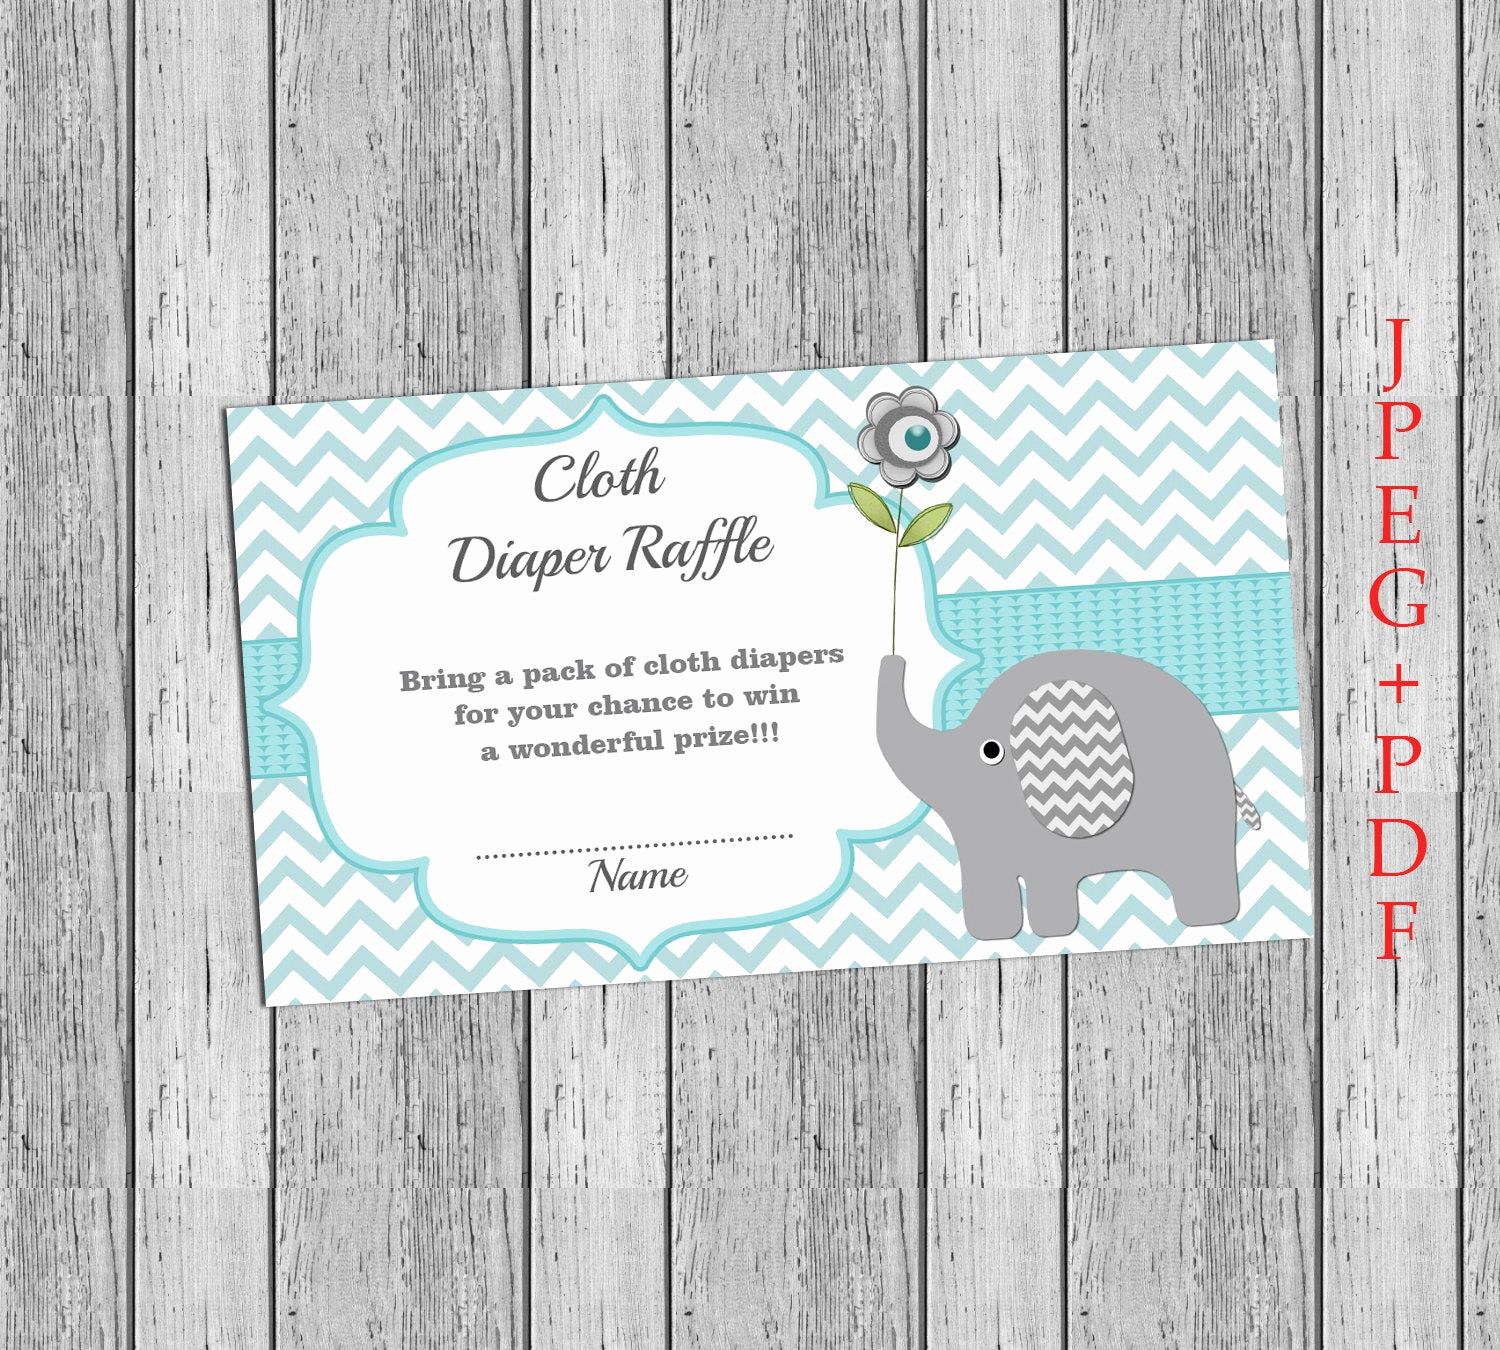 Diaper Raffle Invitation Inserts Lovely Insert for Baby Shower Invitation Cloth Diaper Raffle Ticket